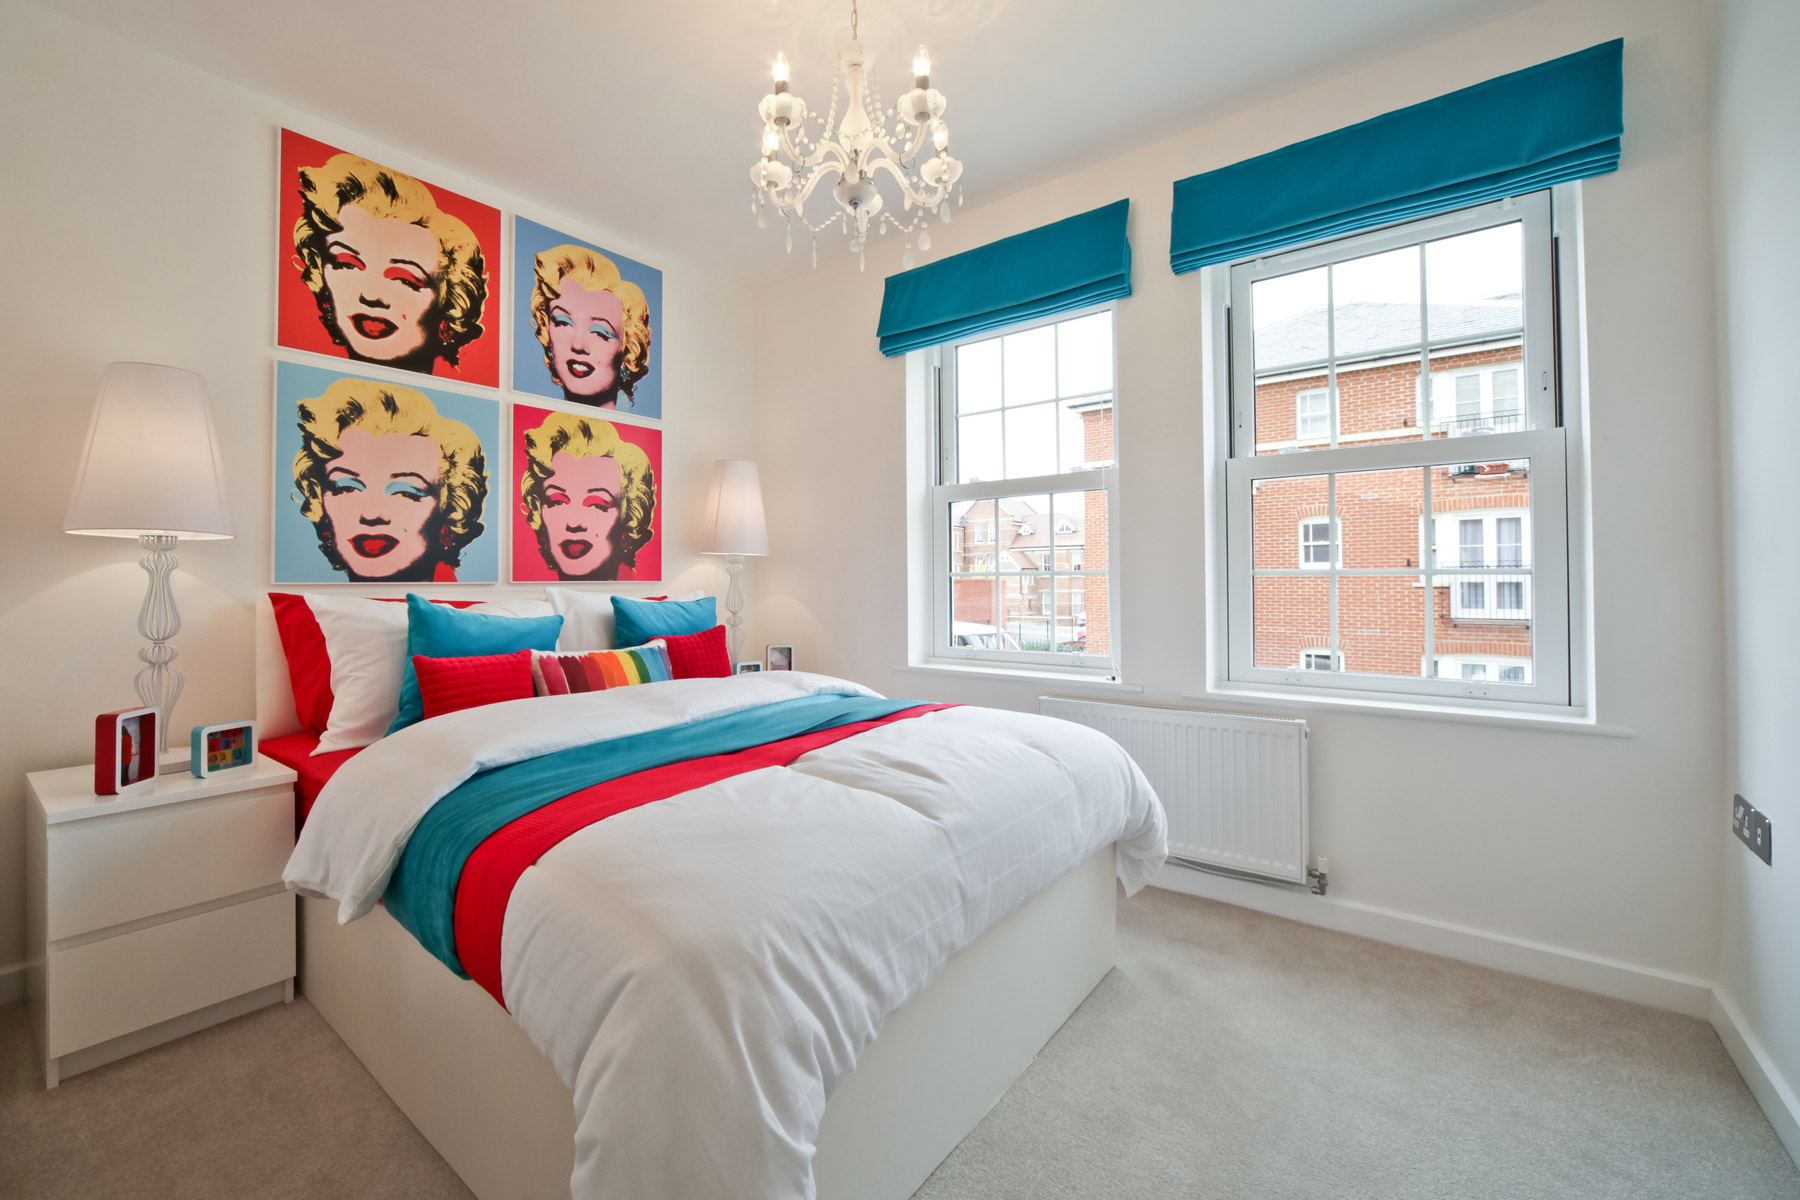 Typical Taylor Wimpey apartment bedroom.